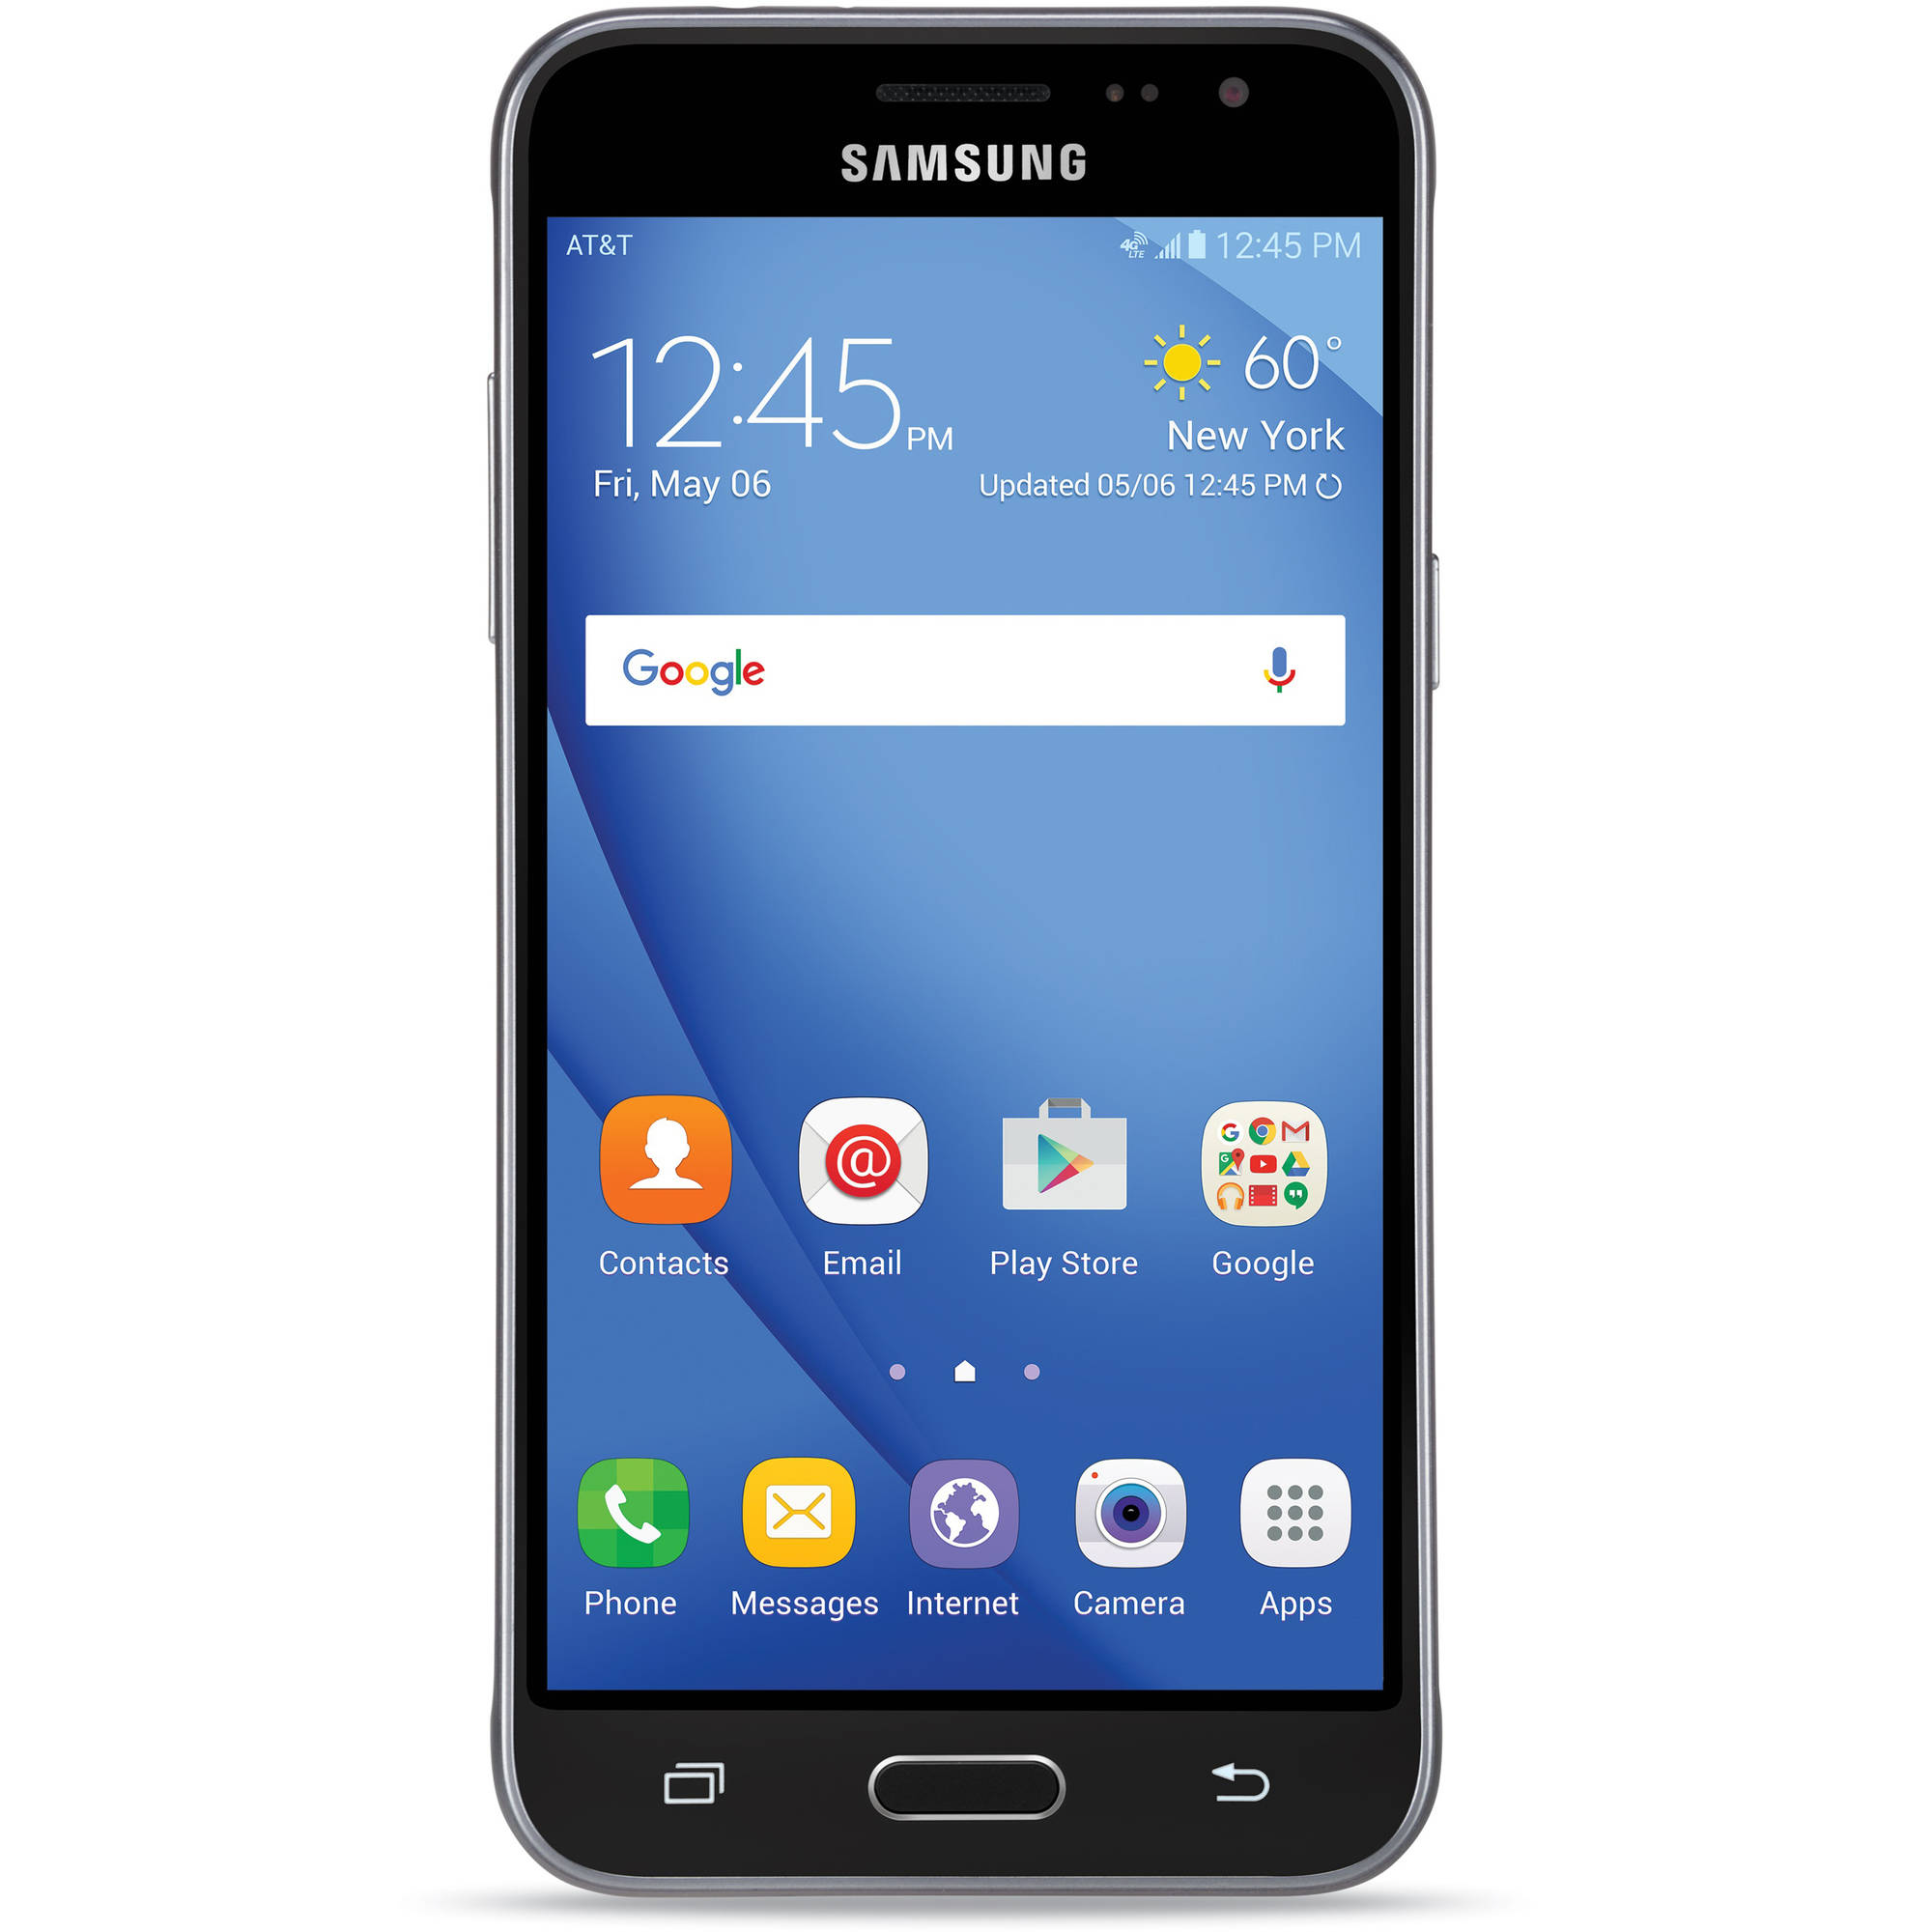 AT&T Samsung Galaxy Express Prime GoPhone